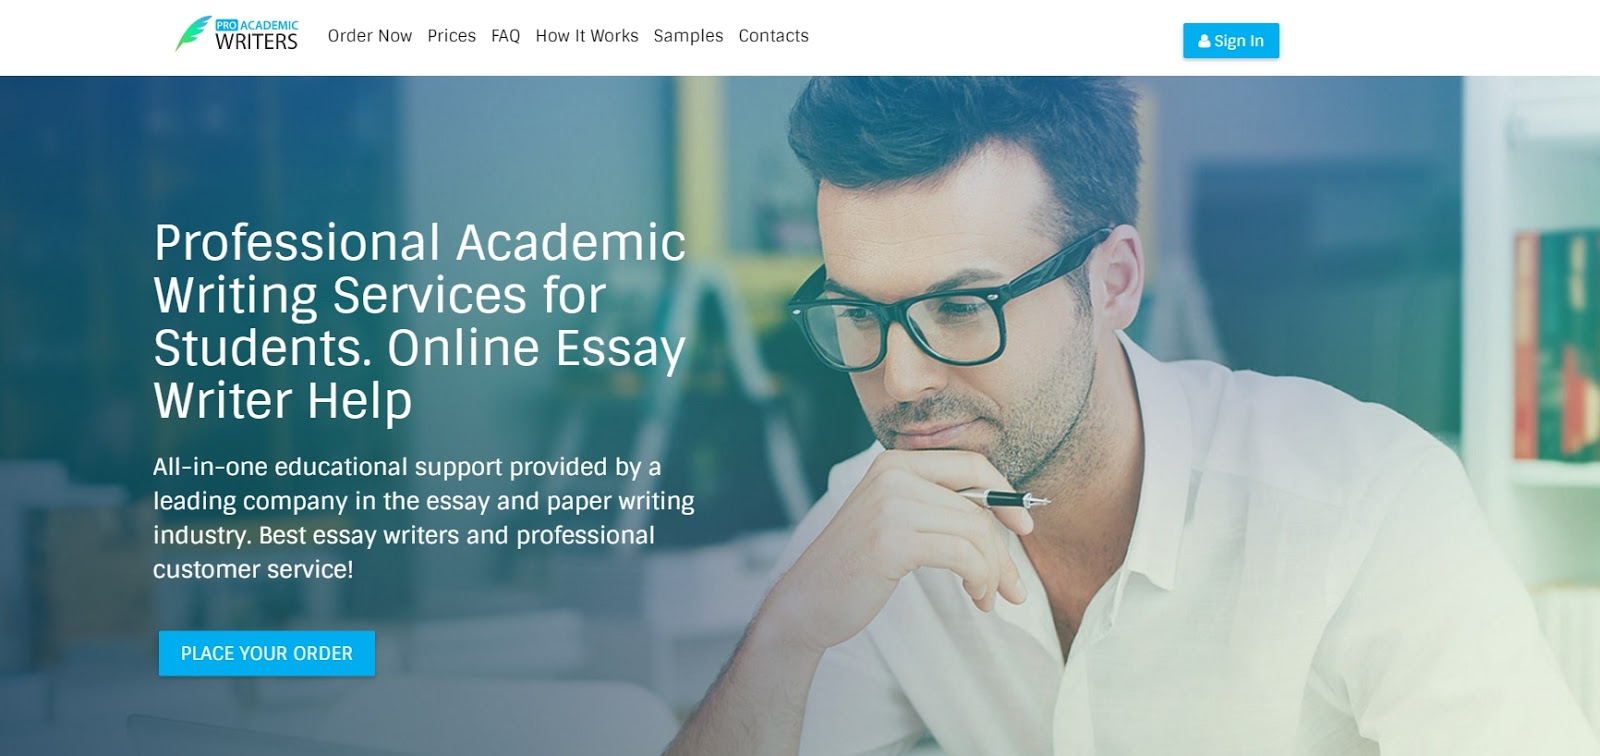 008 Pro Academic Writers Best Essay Writing Service Reviews Singular Top Review Reddit Uk Full